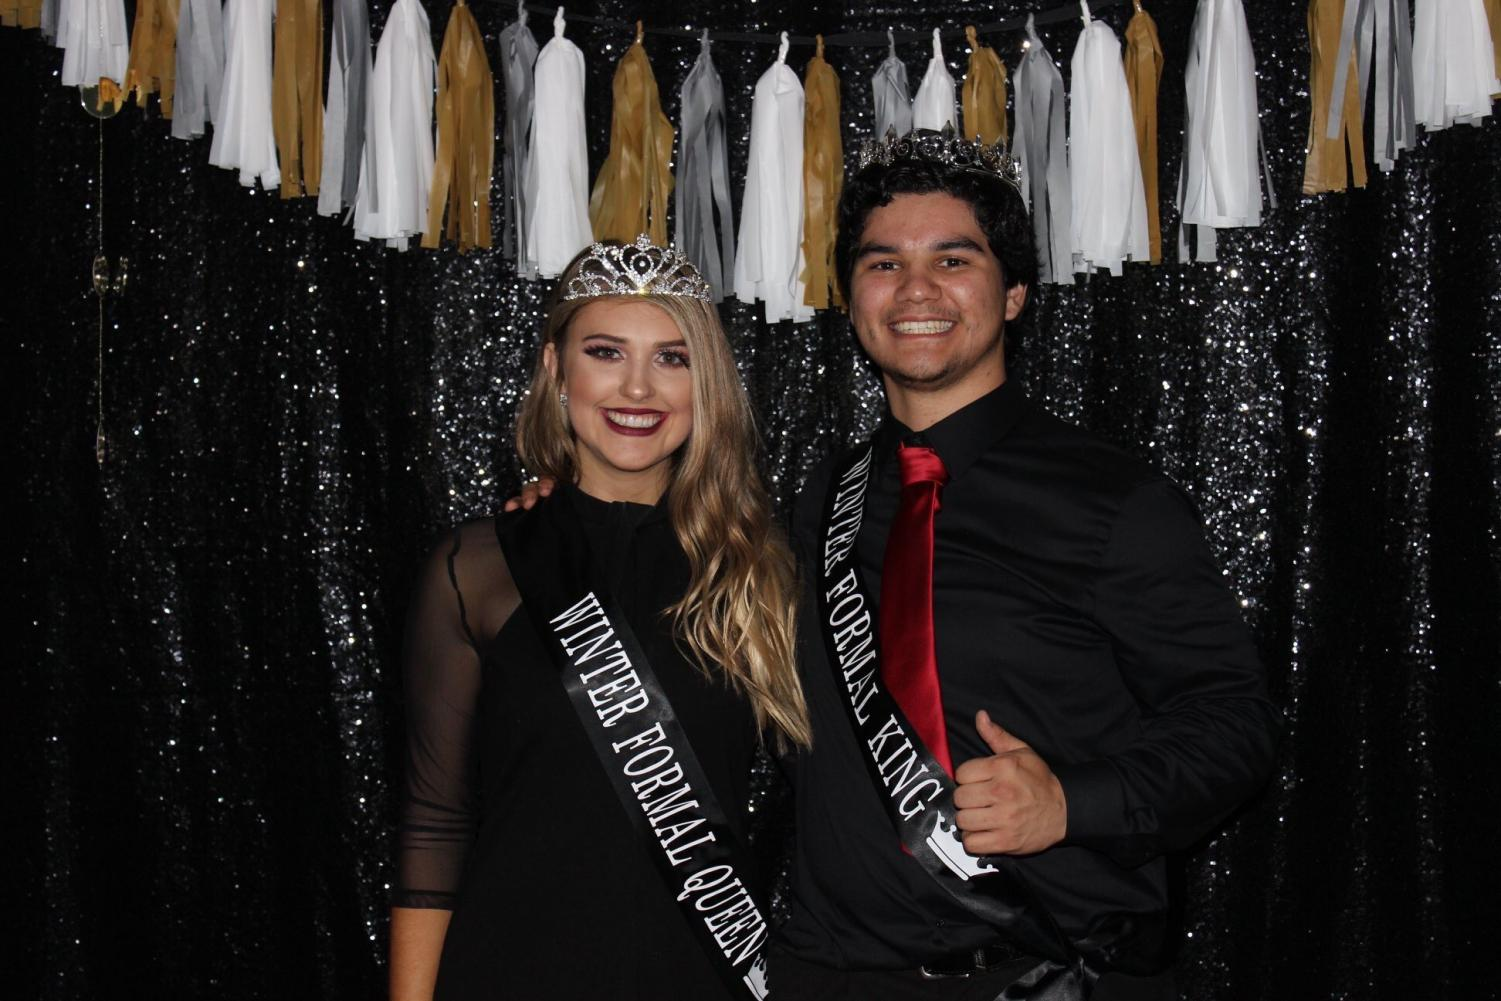 Seniors Monterey Valladares and Rachel Belcher were crowned king and queen at the Winter Formal.